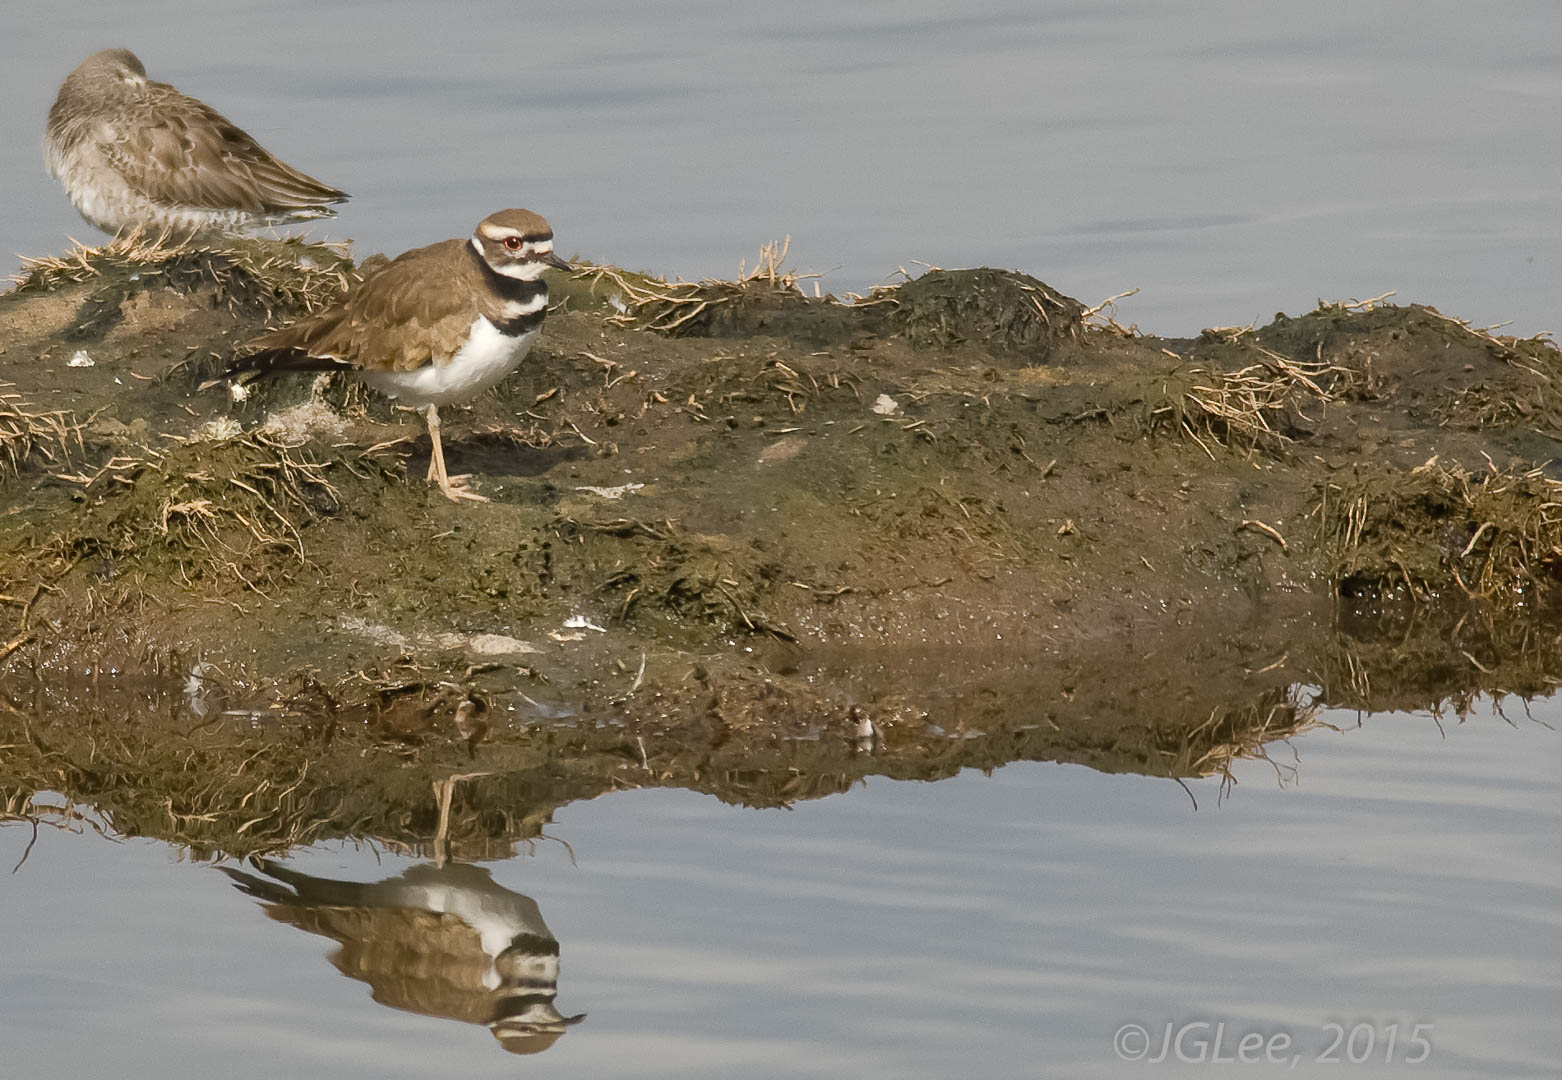 Reflection of a Killdeer